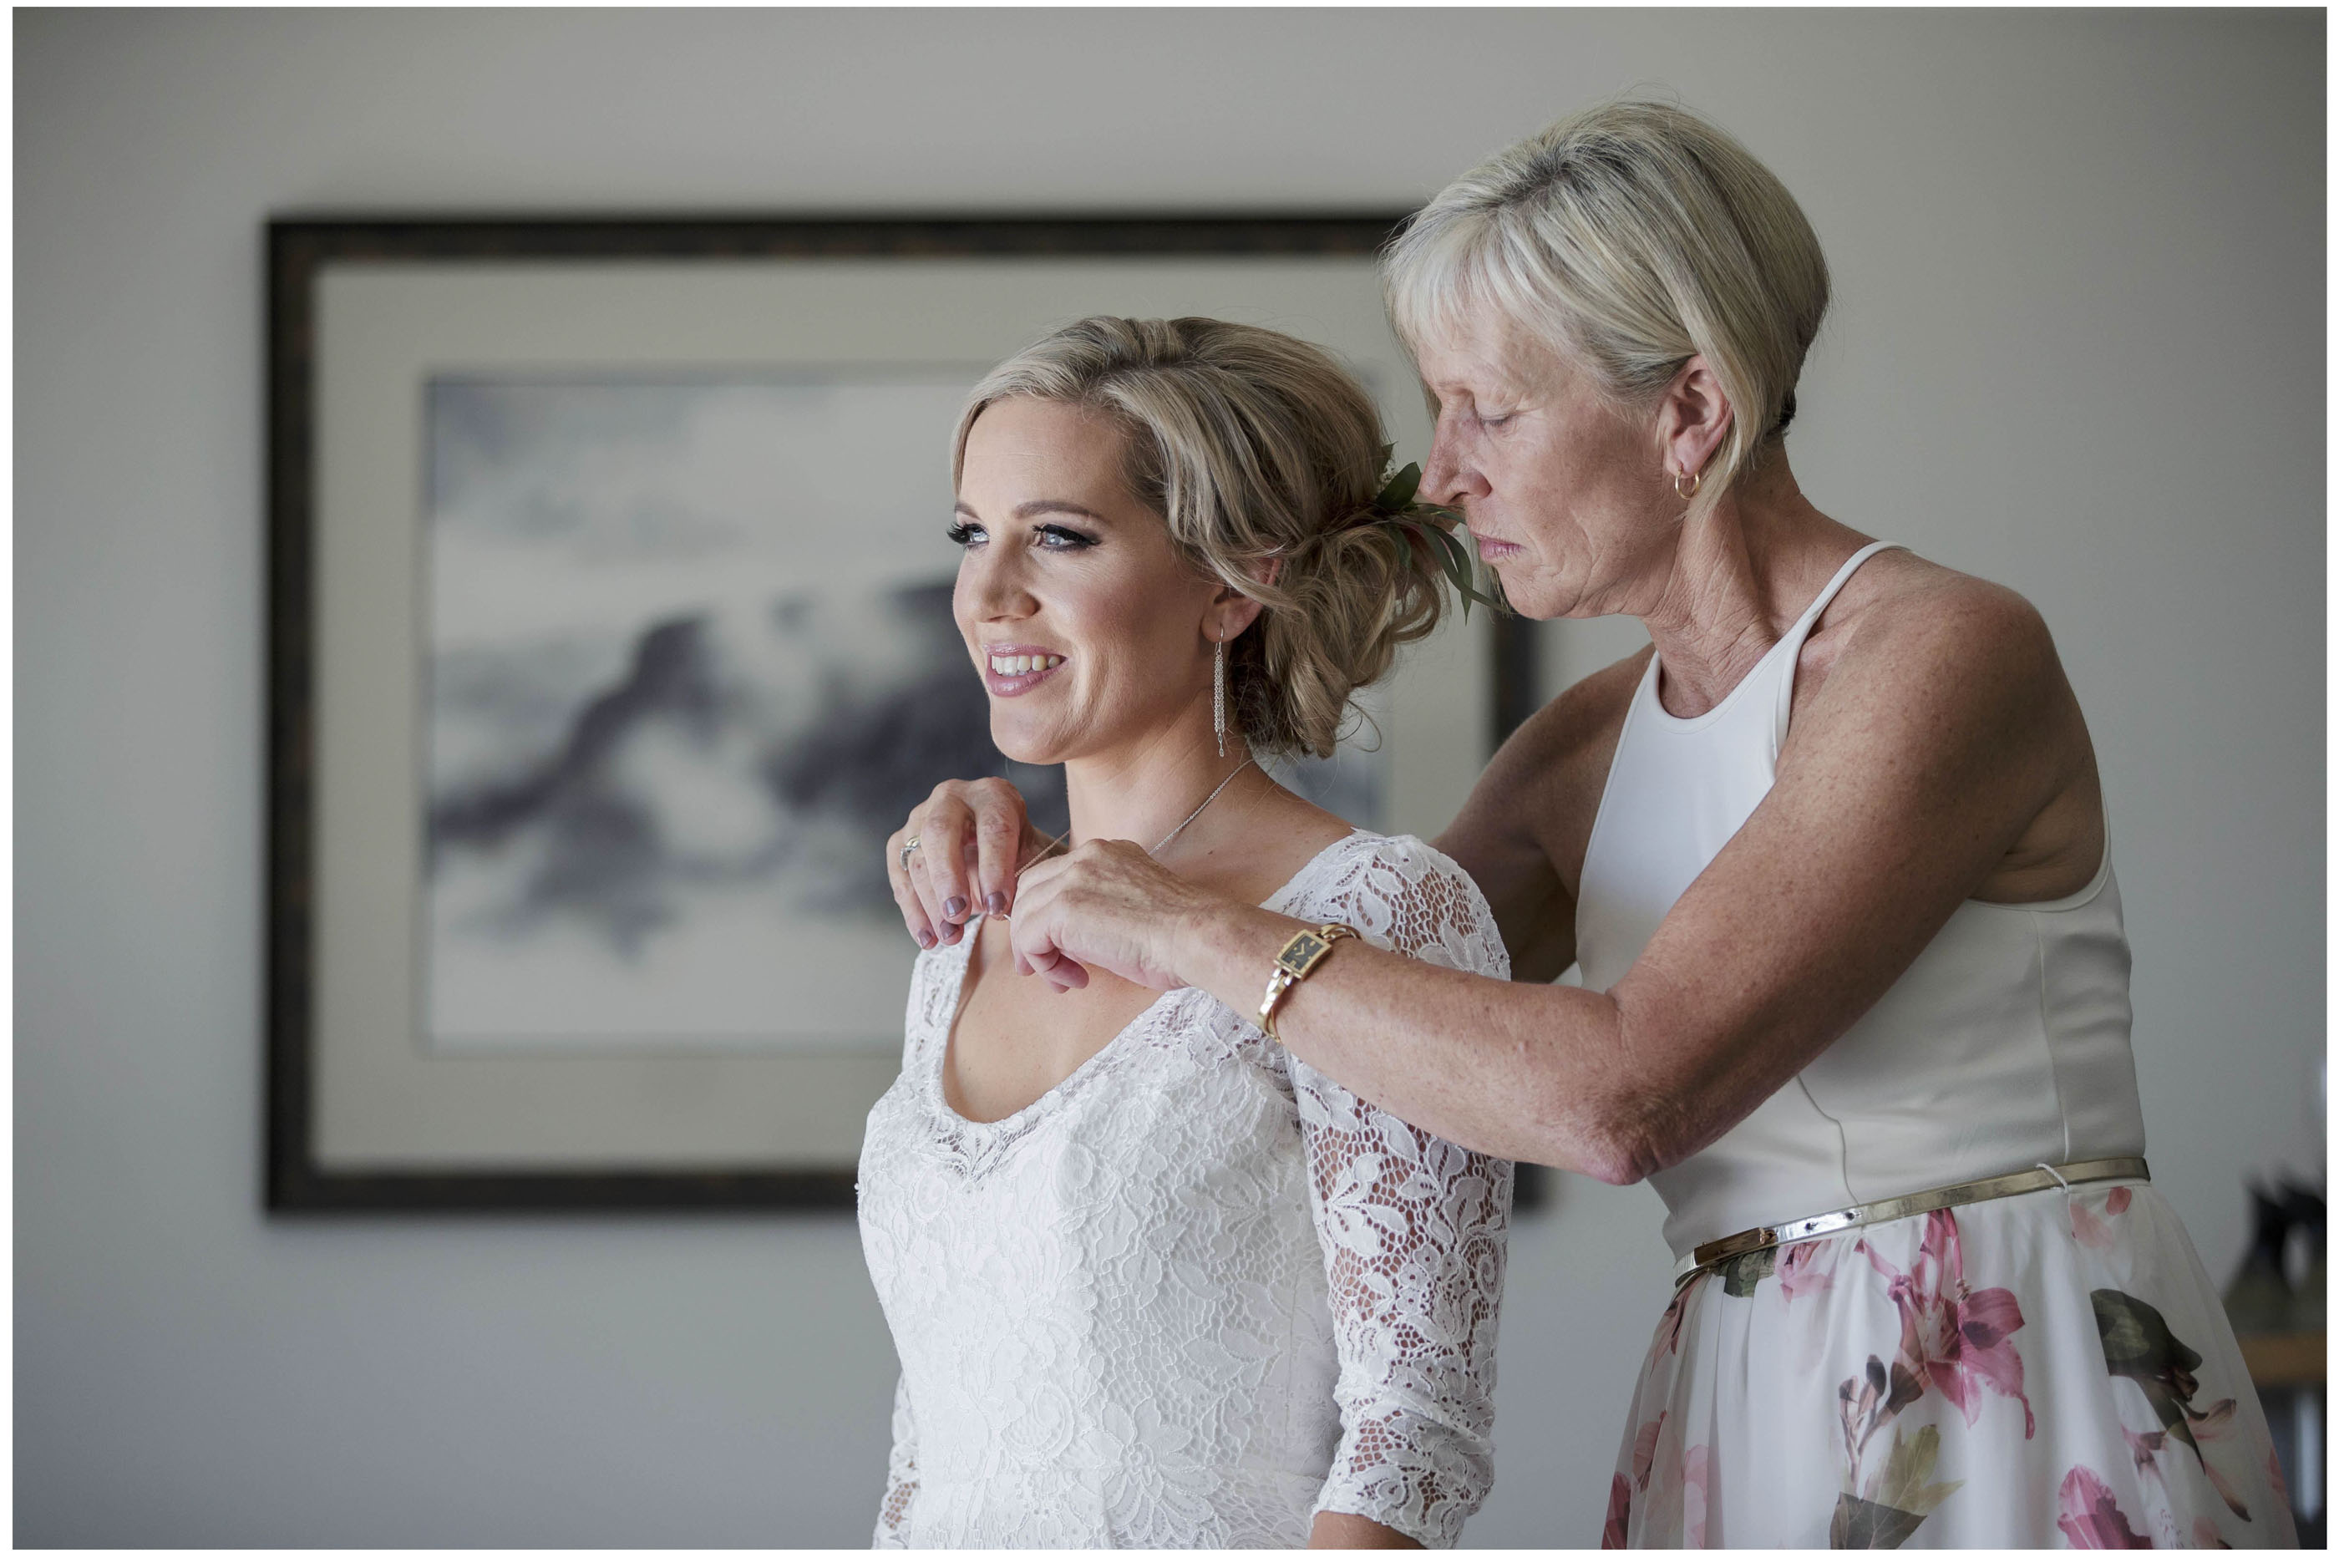 Moth of the bride places wedding jewellery on the bride , Auckland wedding photographers, Five Knotts Wedding